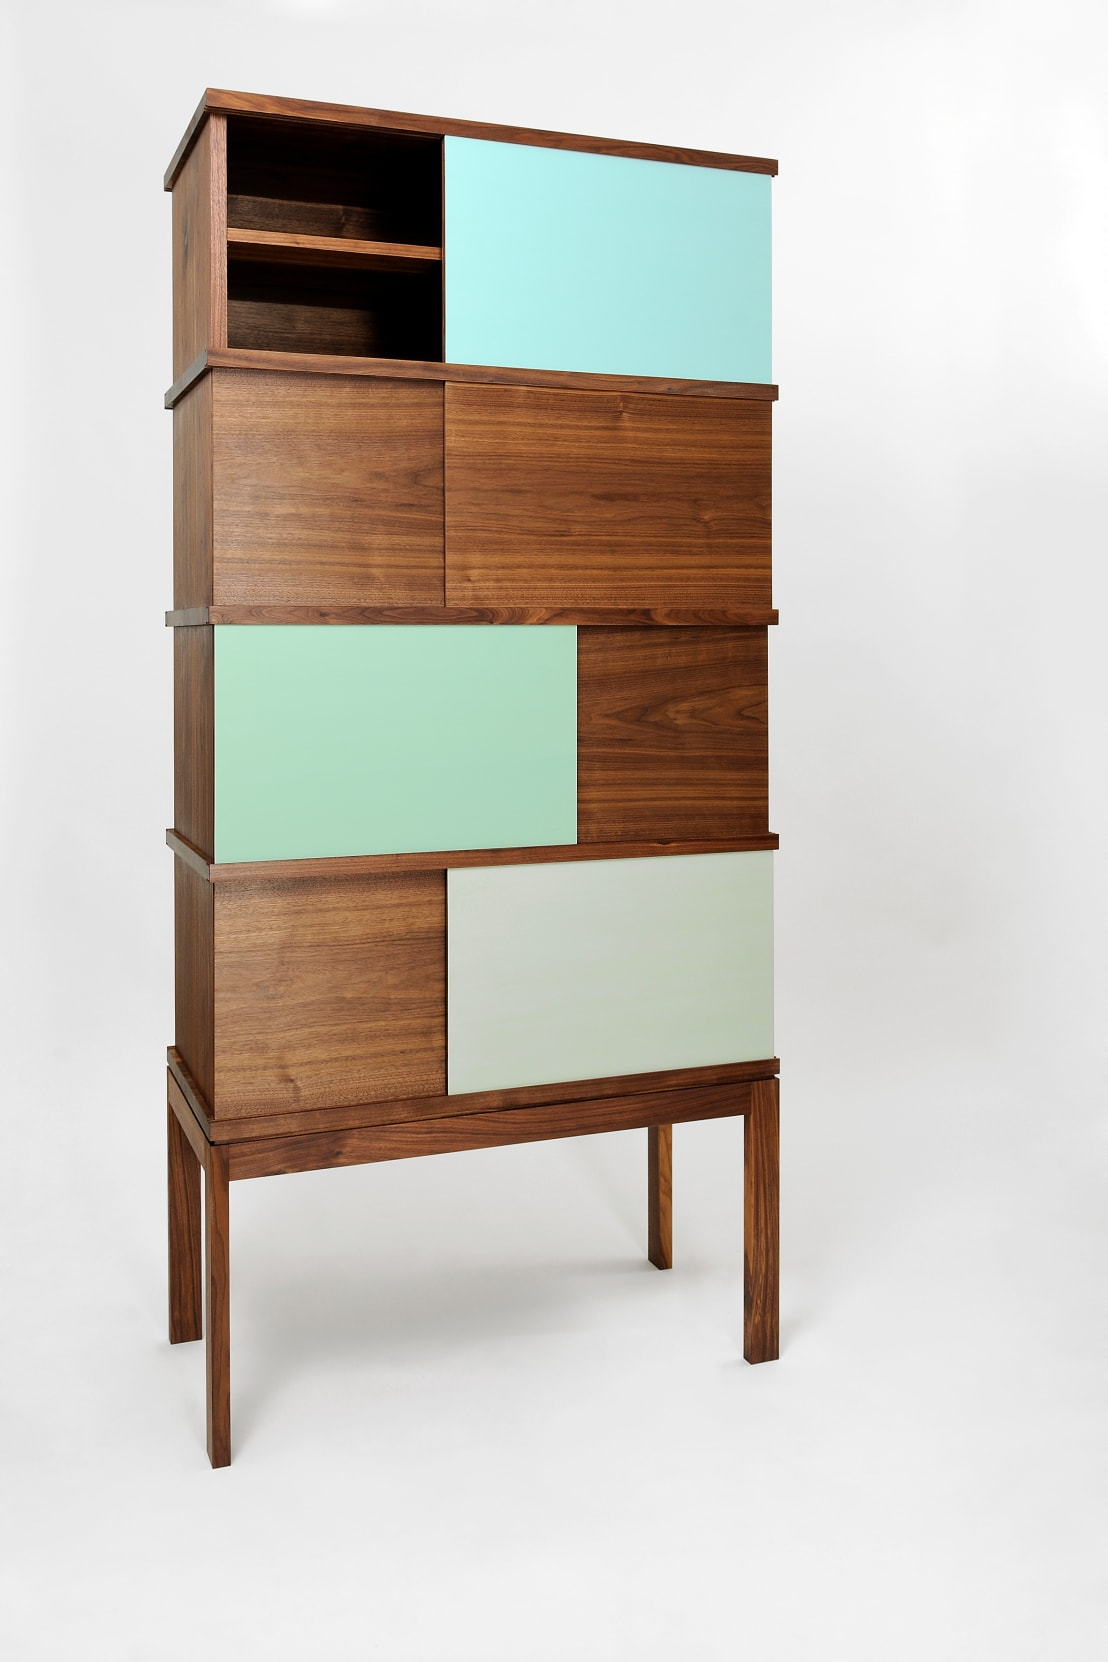 geschirrschrank colorante aus nussbaum von martin wilmes homify. Black Bedroom Furniture Sets. Home Design Ideas